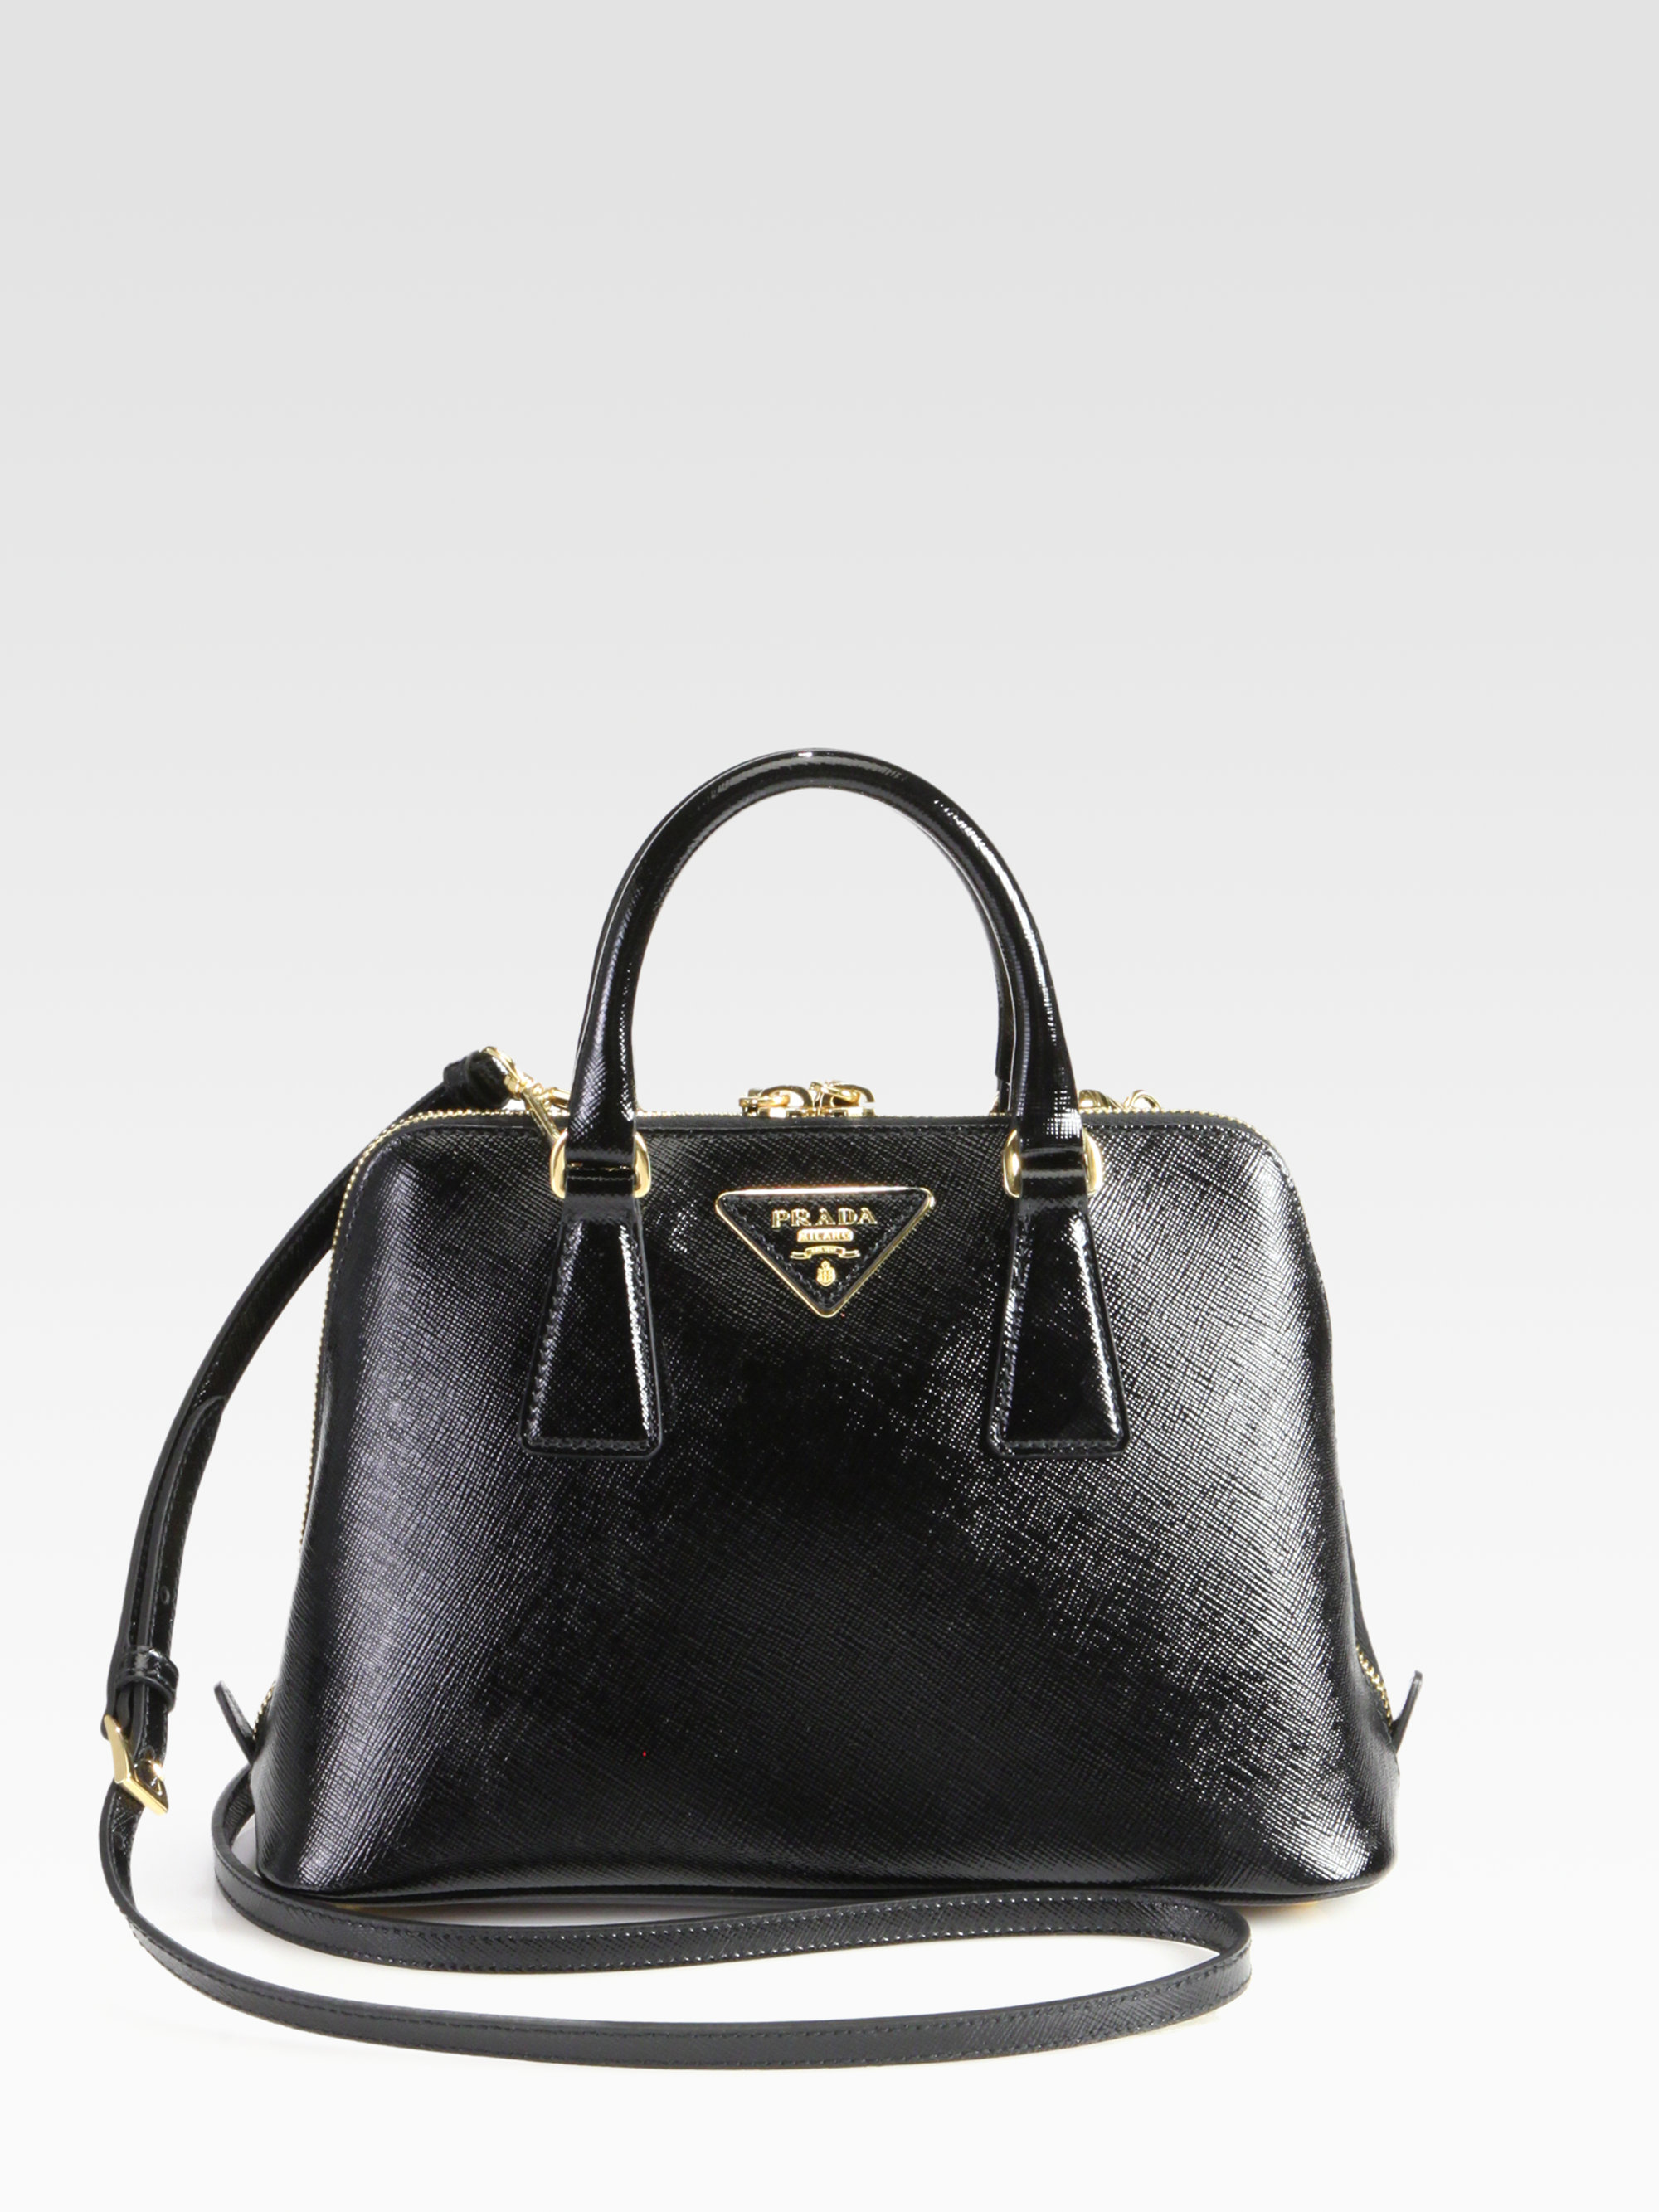 9cdf8451fe57 ... official store prada saffiano vernice small round top handle bag in black  lyst 7b139 0cc67